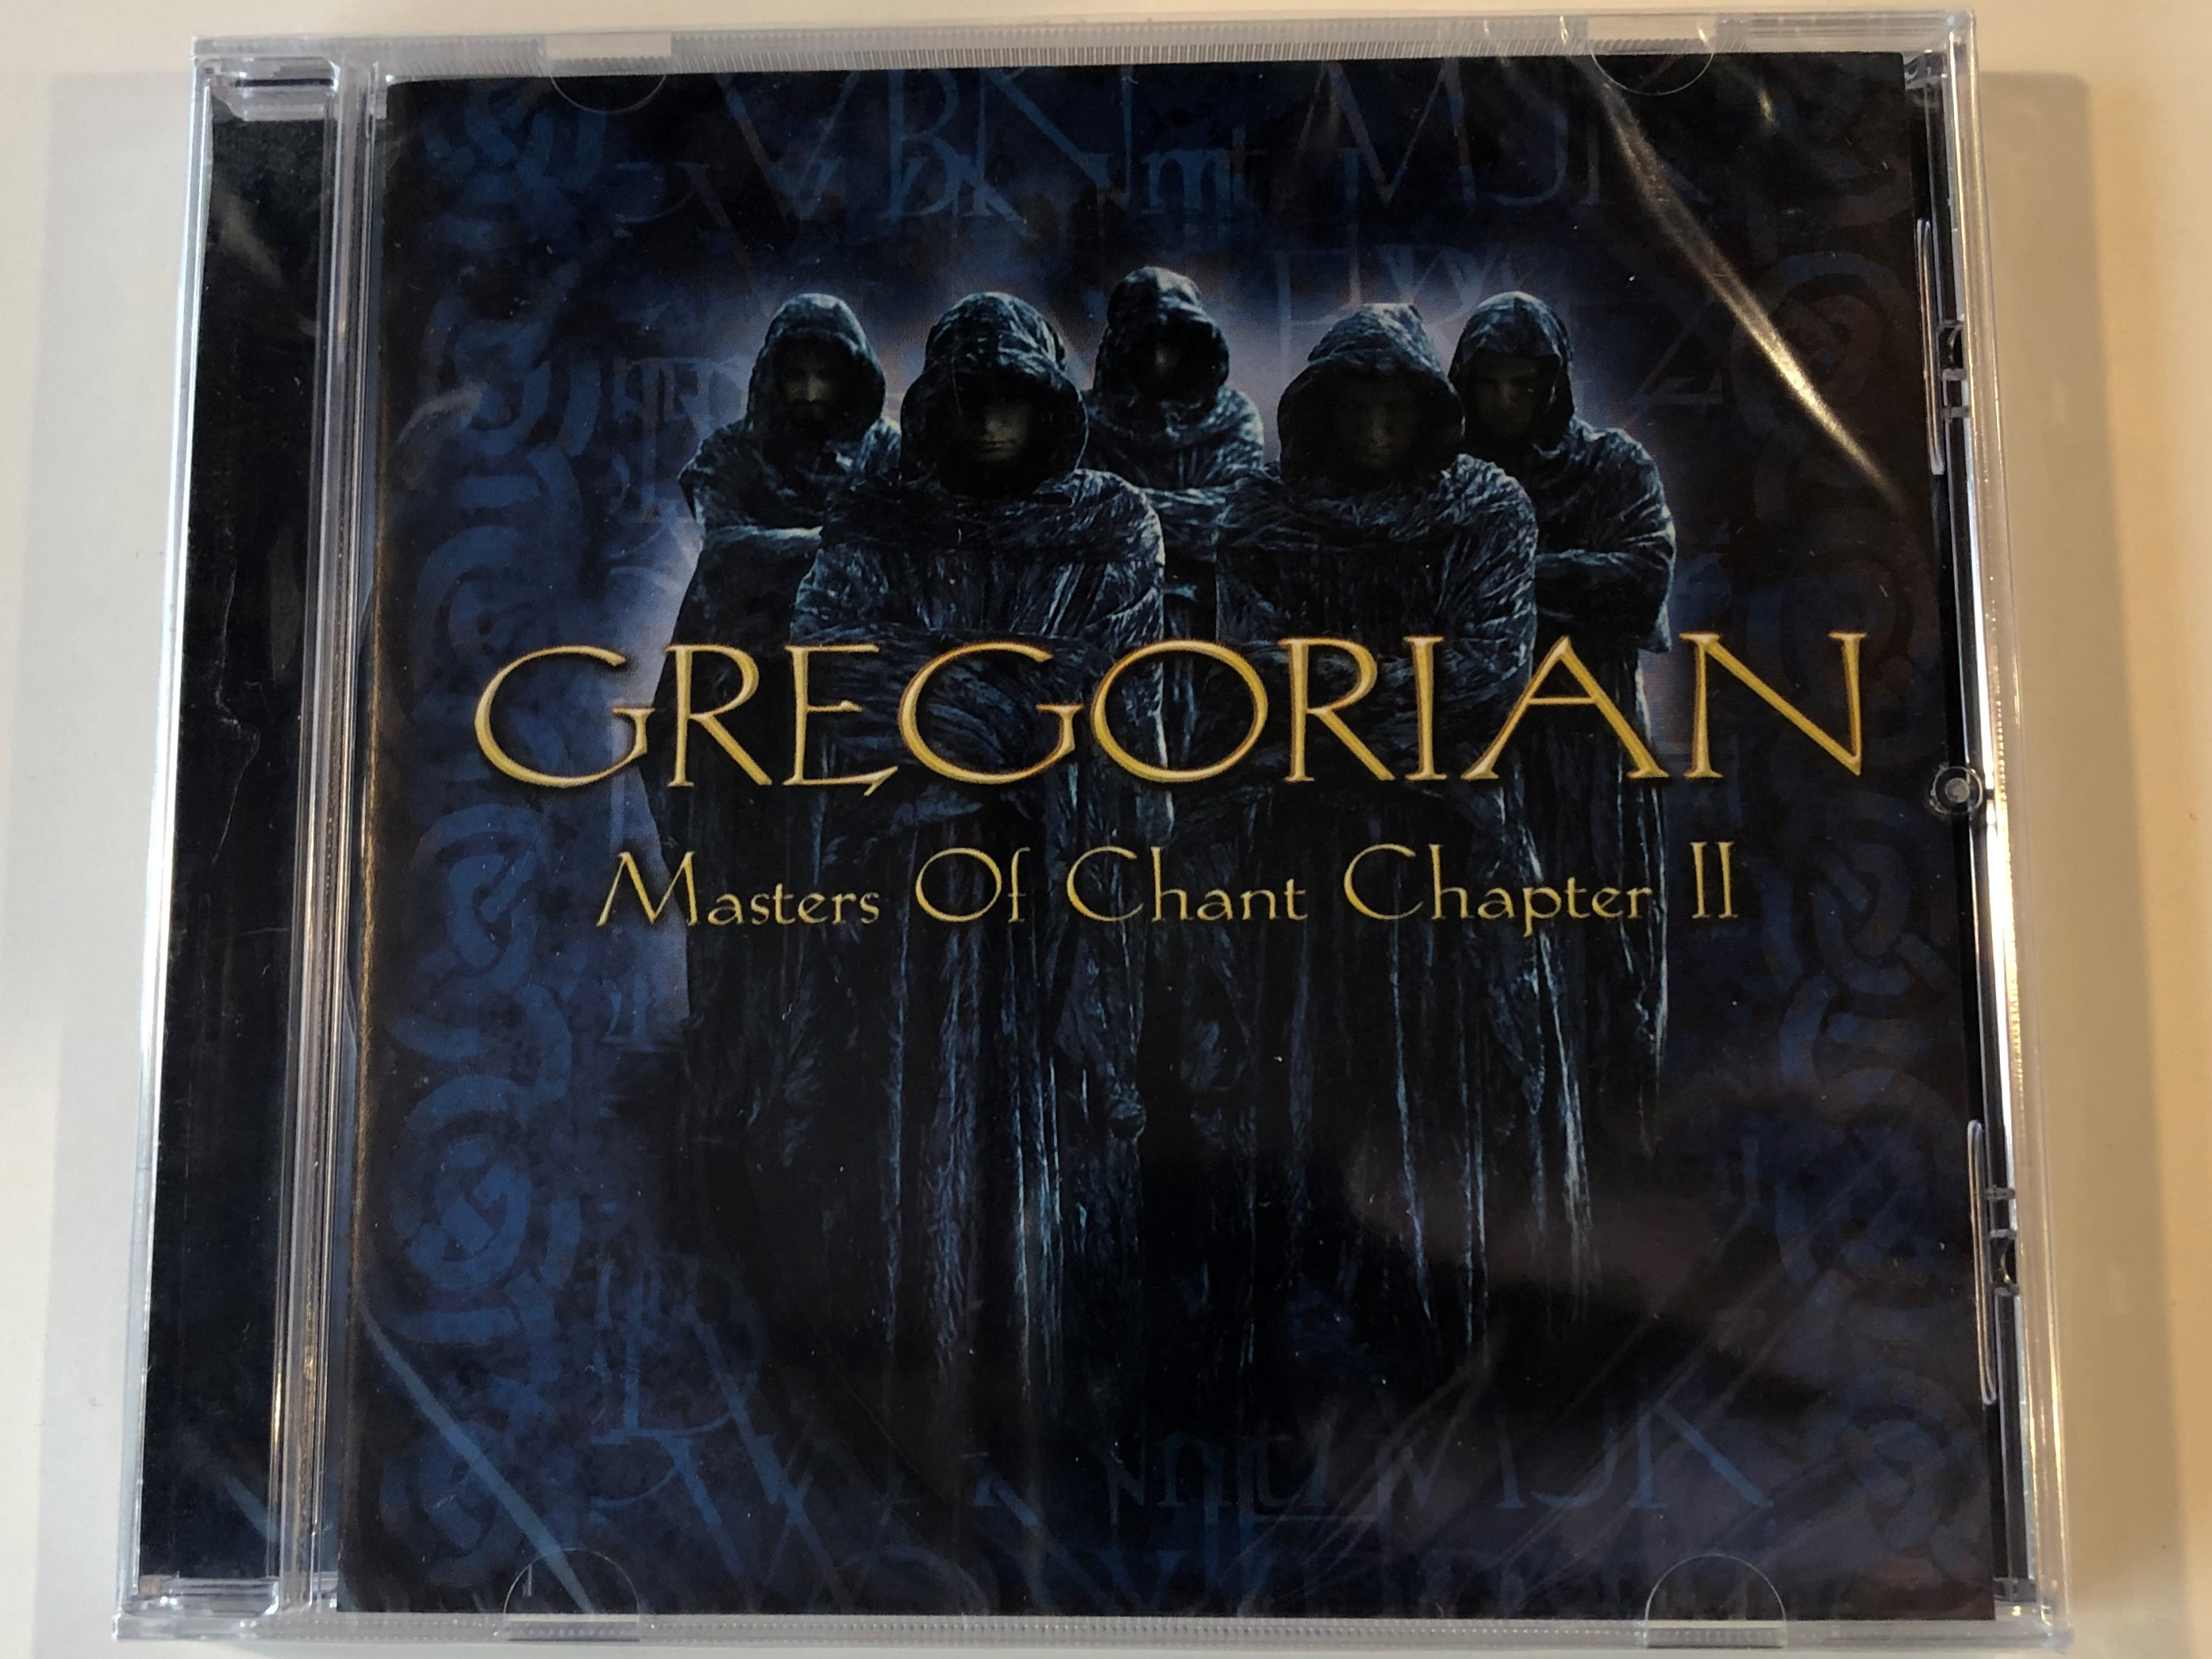 gregorian-masters-of-chant-chapter-ii-edel-records-audio-cd-2001-0130792ere-1-.jpg